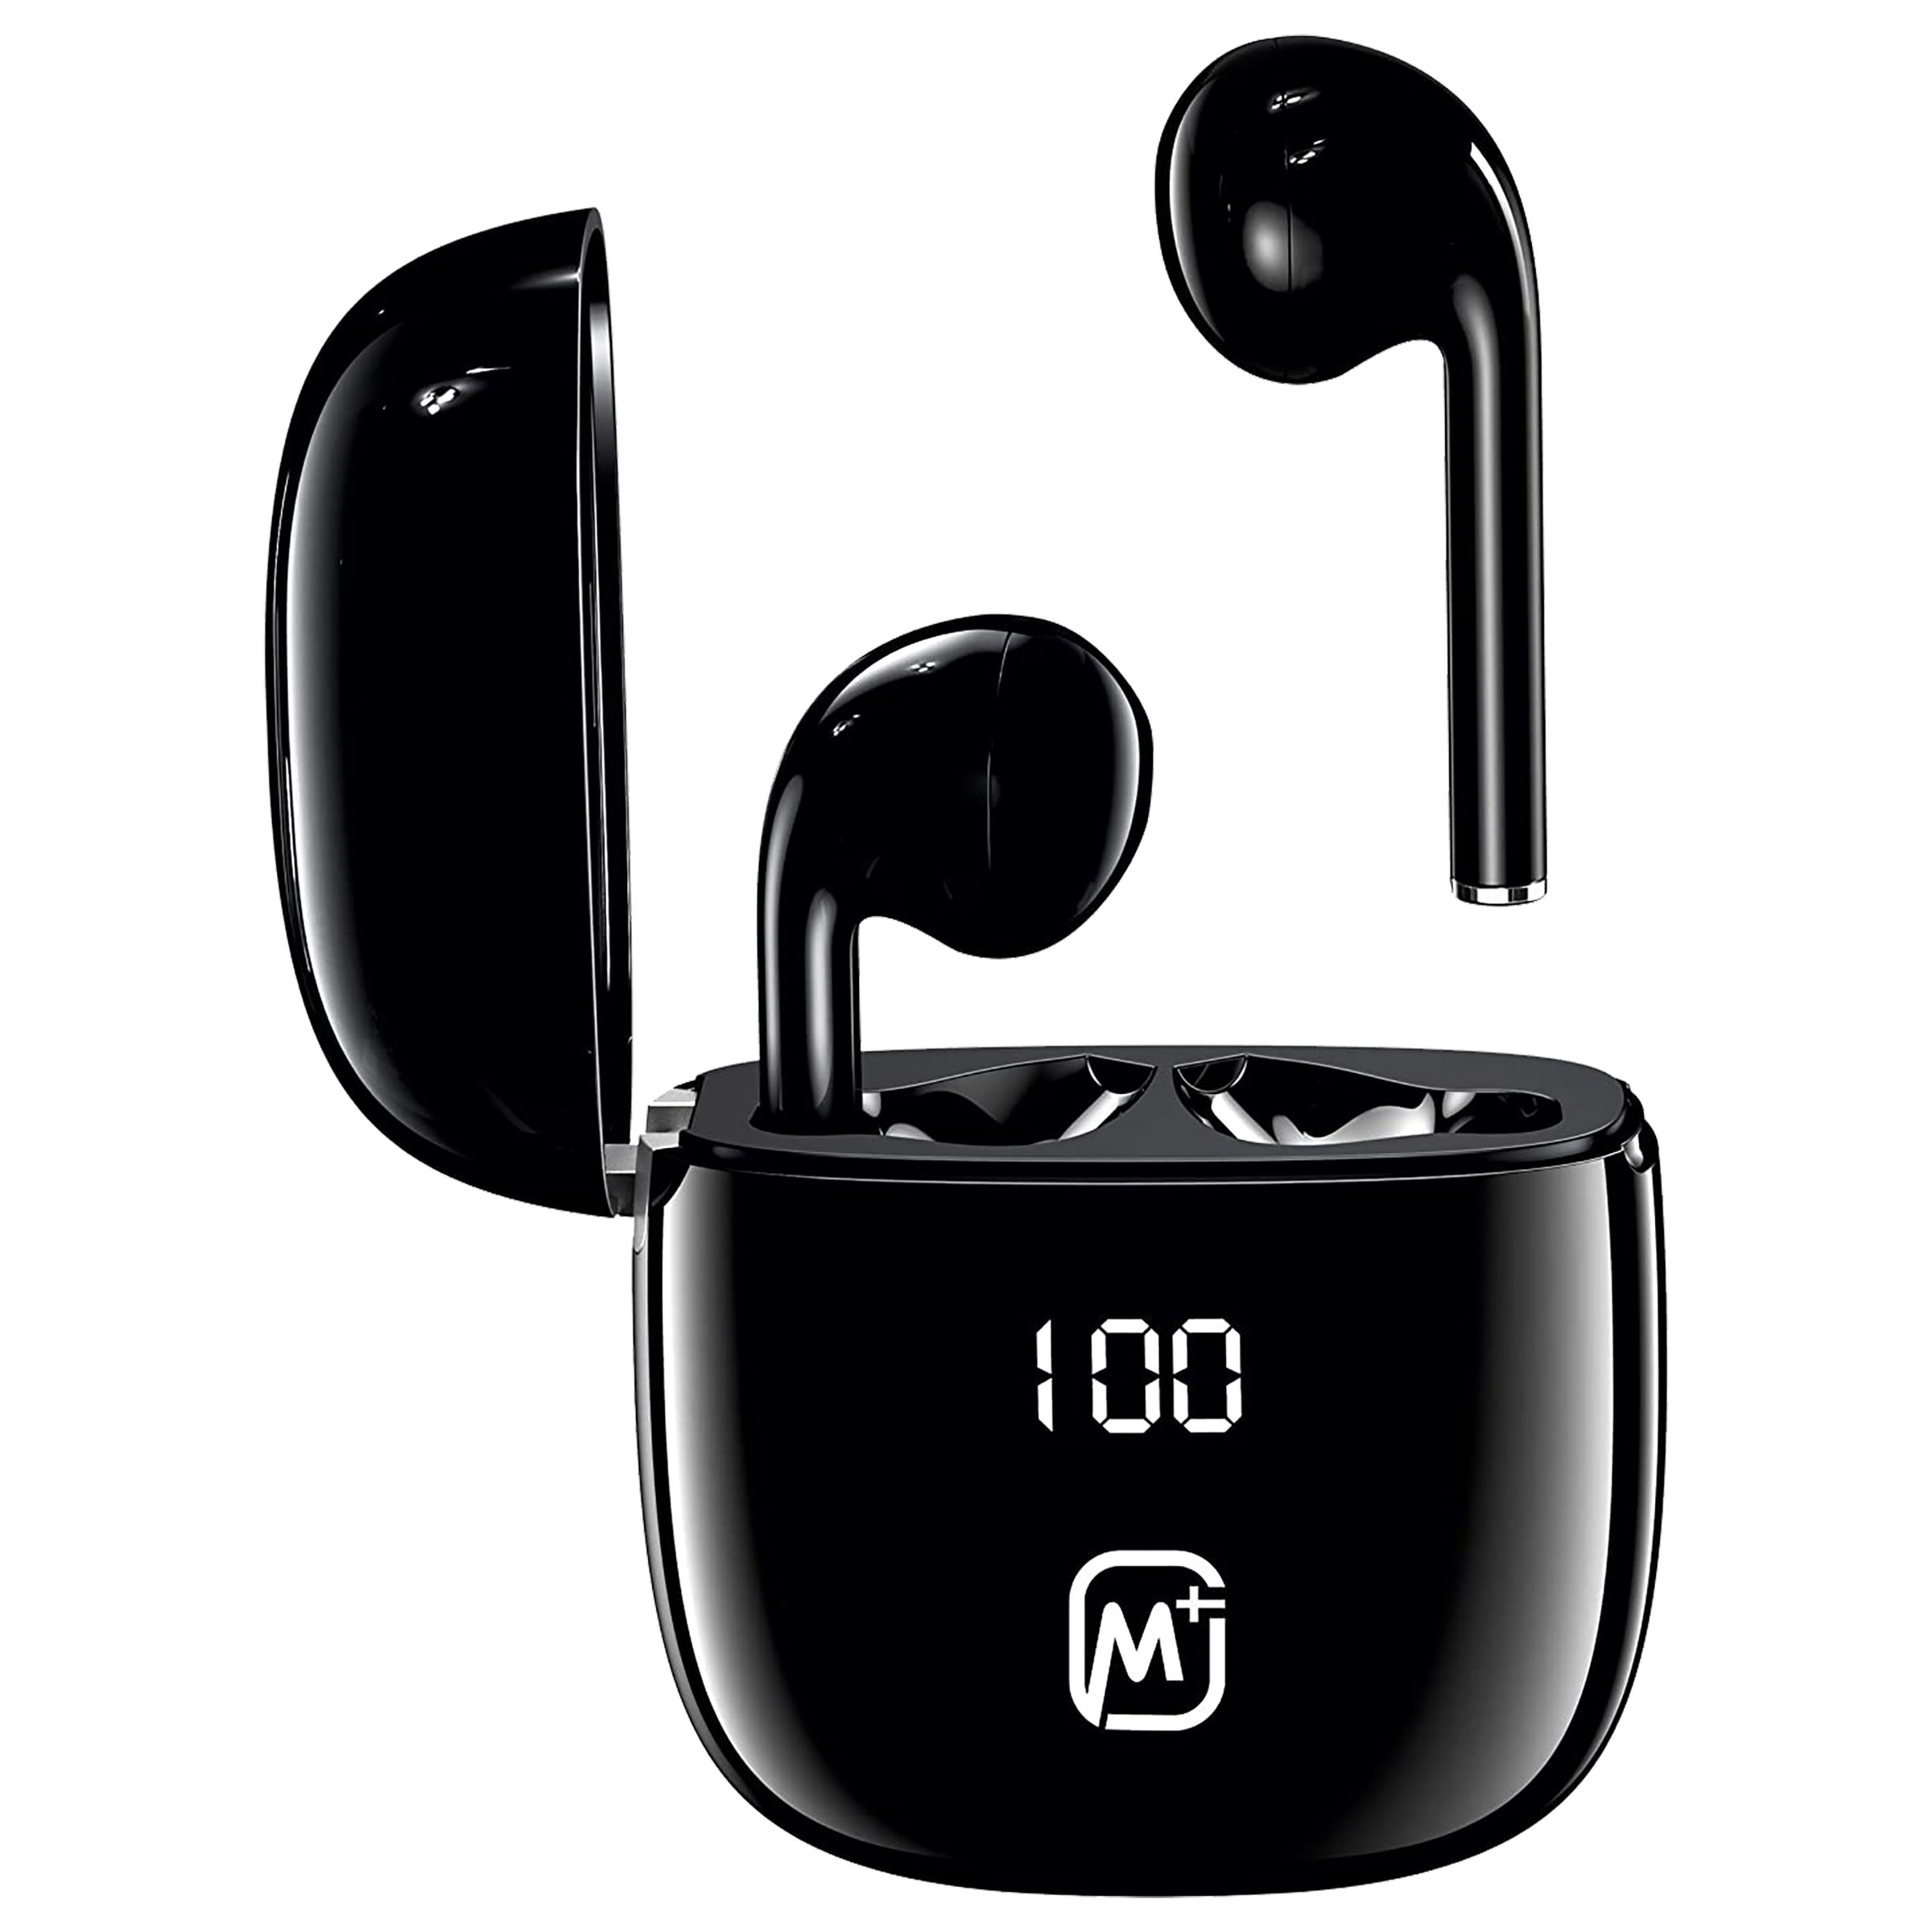 MATATA In-Ear Active Noise Cancellation Truly Wireless Earbuds with Mic (Bluetooth 5.0, IPX4 Waterproof, MTTT28, Black)_1